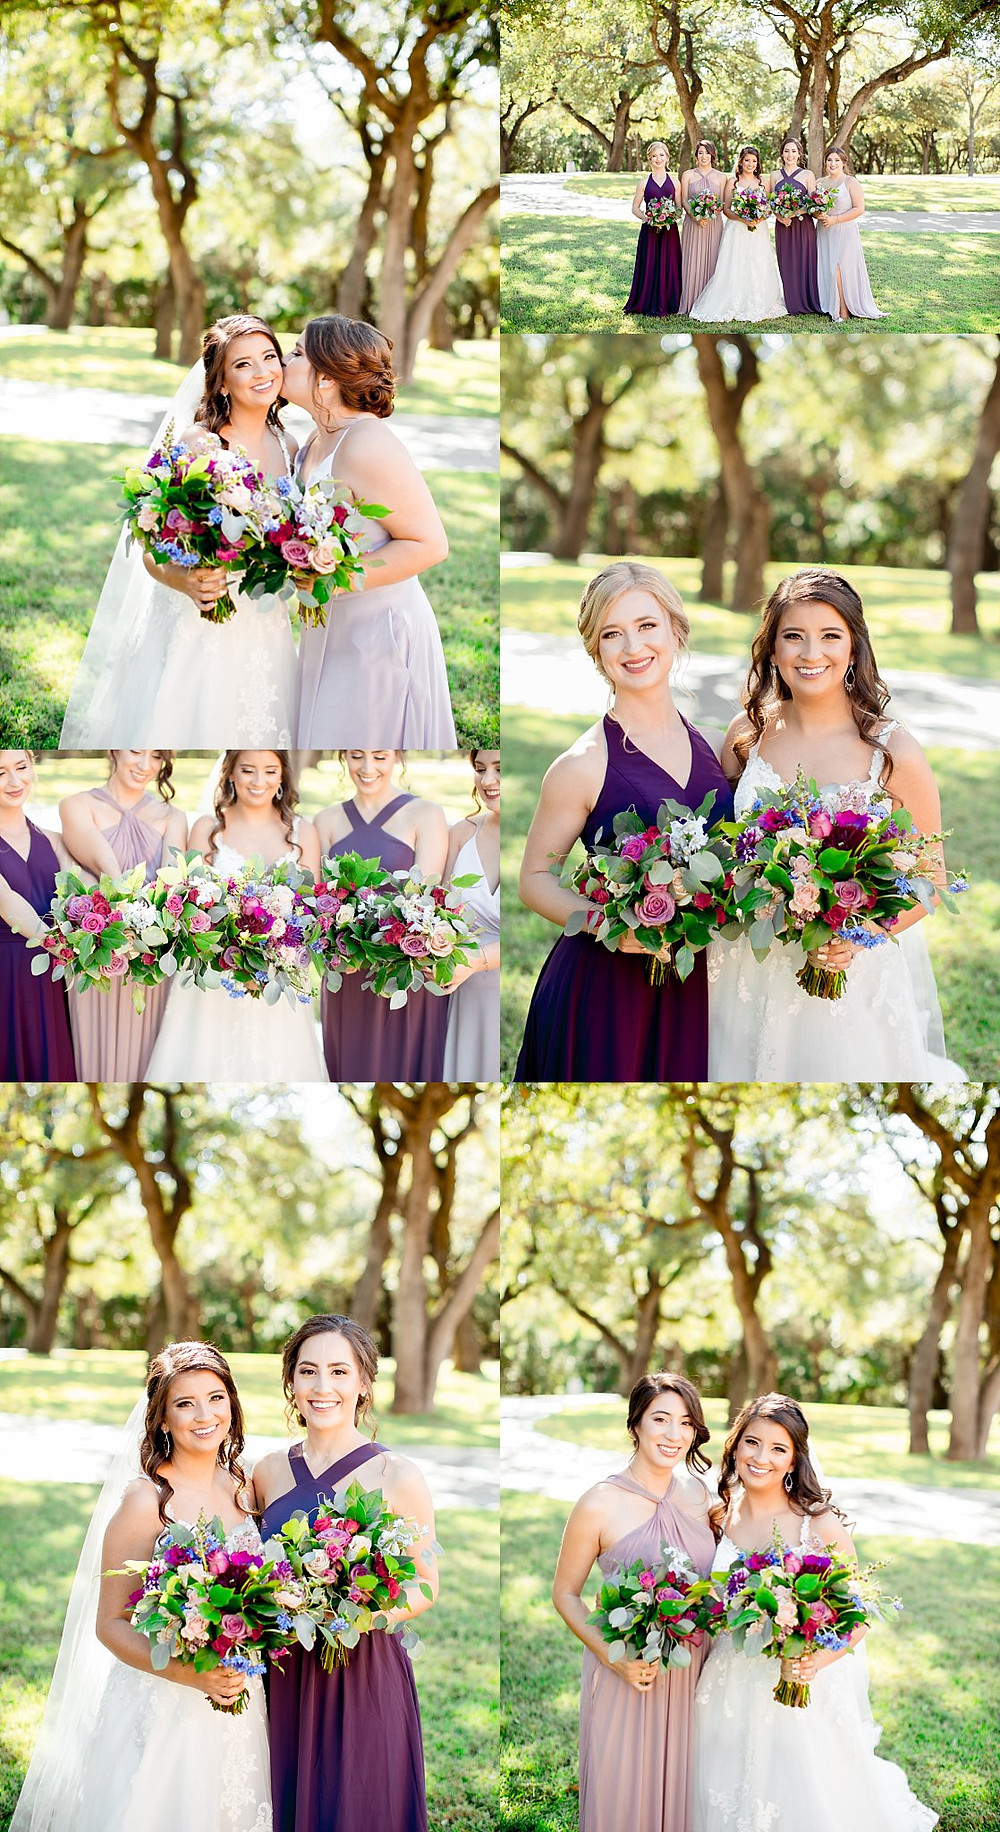 Chandelier of Gruene Wedding by Snap Chic Photography | New Braunfels Wedding Photographer | Boerne Wedding Photographer